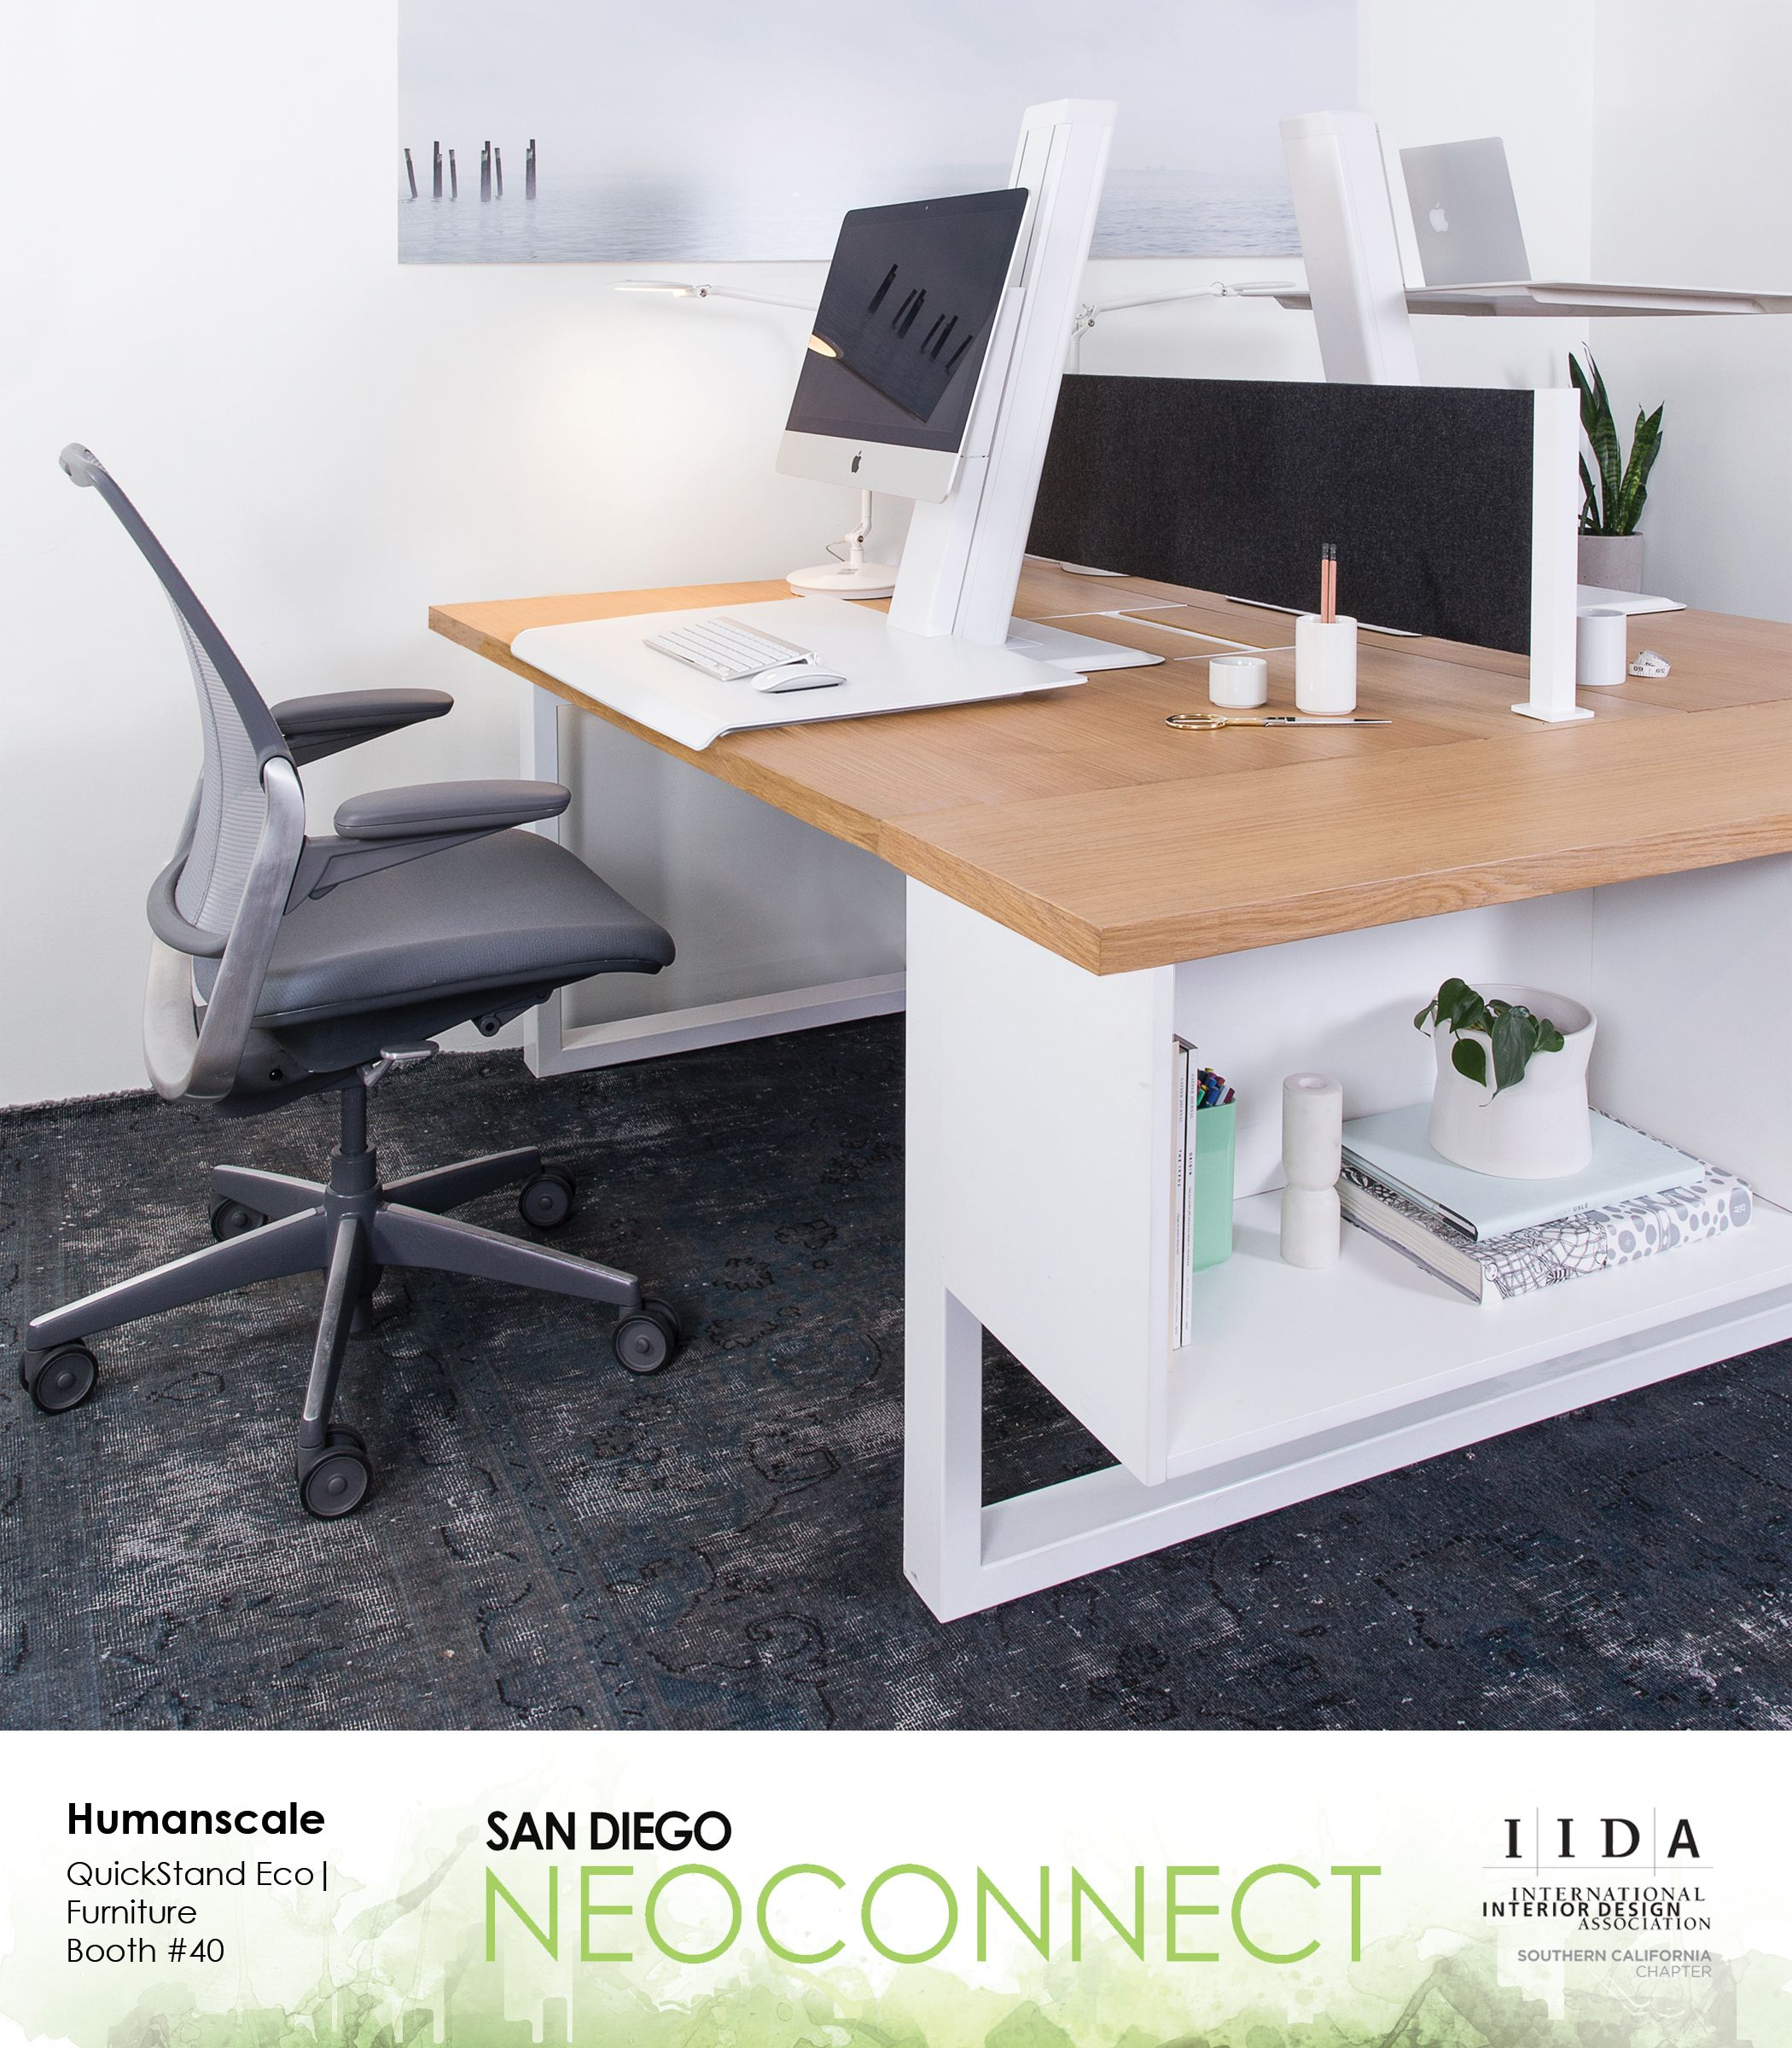 Humanscale Booth 40 QuickStand Eco Furniture